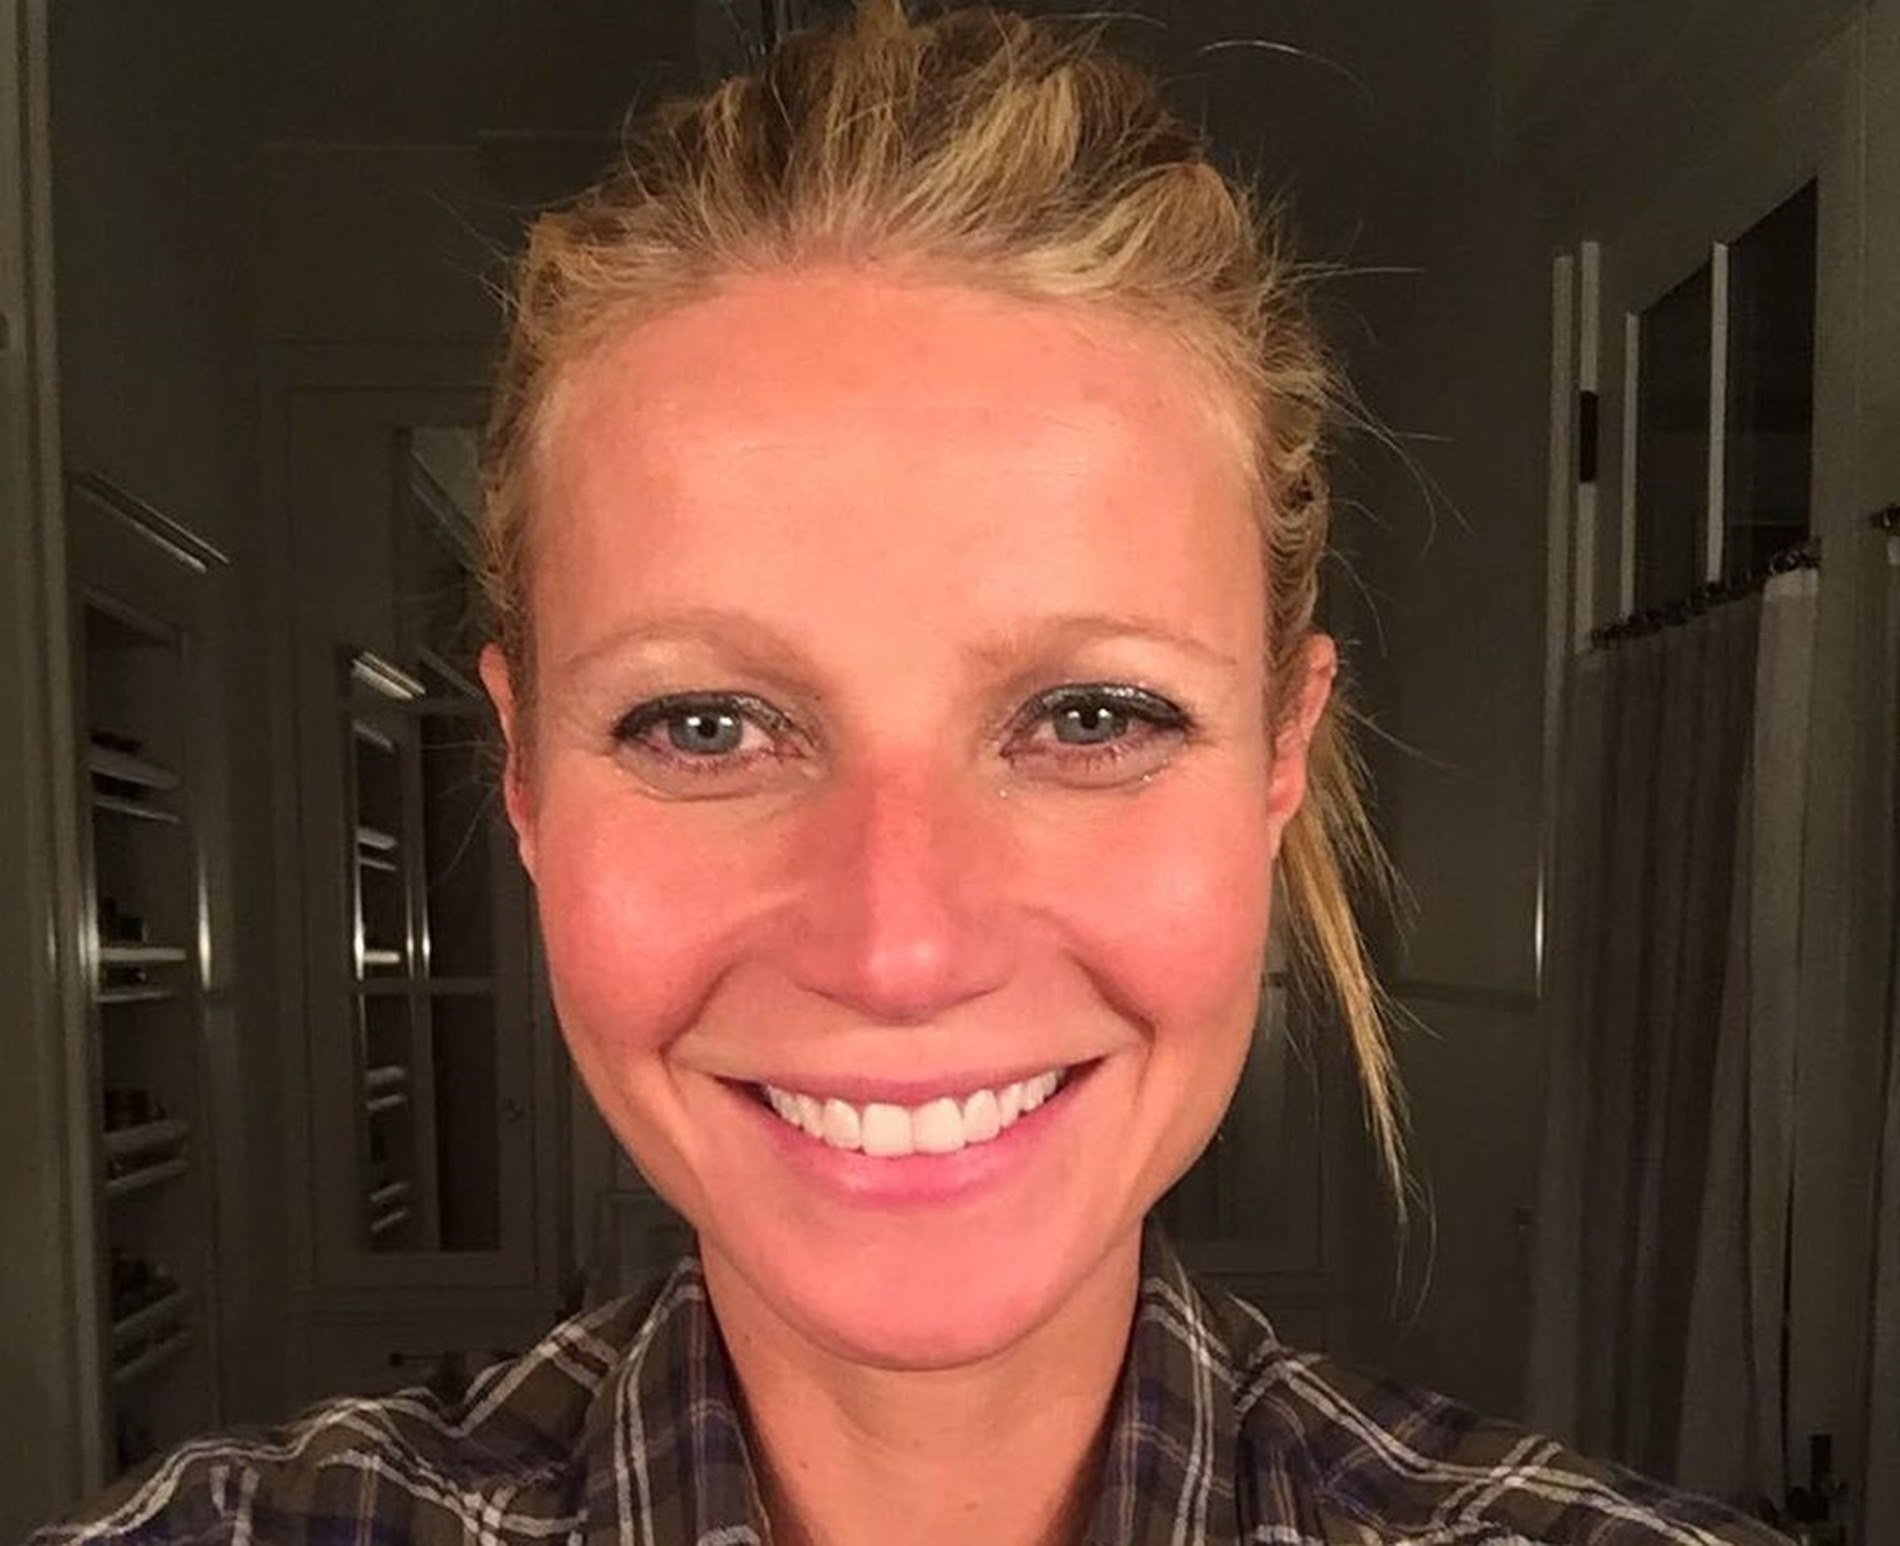 """""""gwyneth-paltrow-shares-out-of-this-world-birthday-suit-picture-as-she-turns-48-for-some-fans-this-is-a-disappointing-turn"""""""